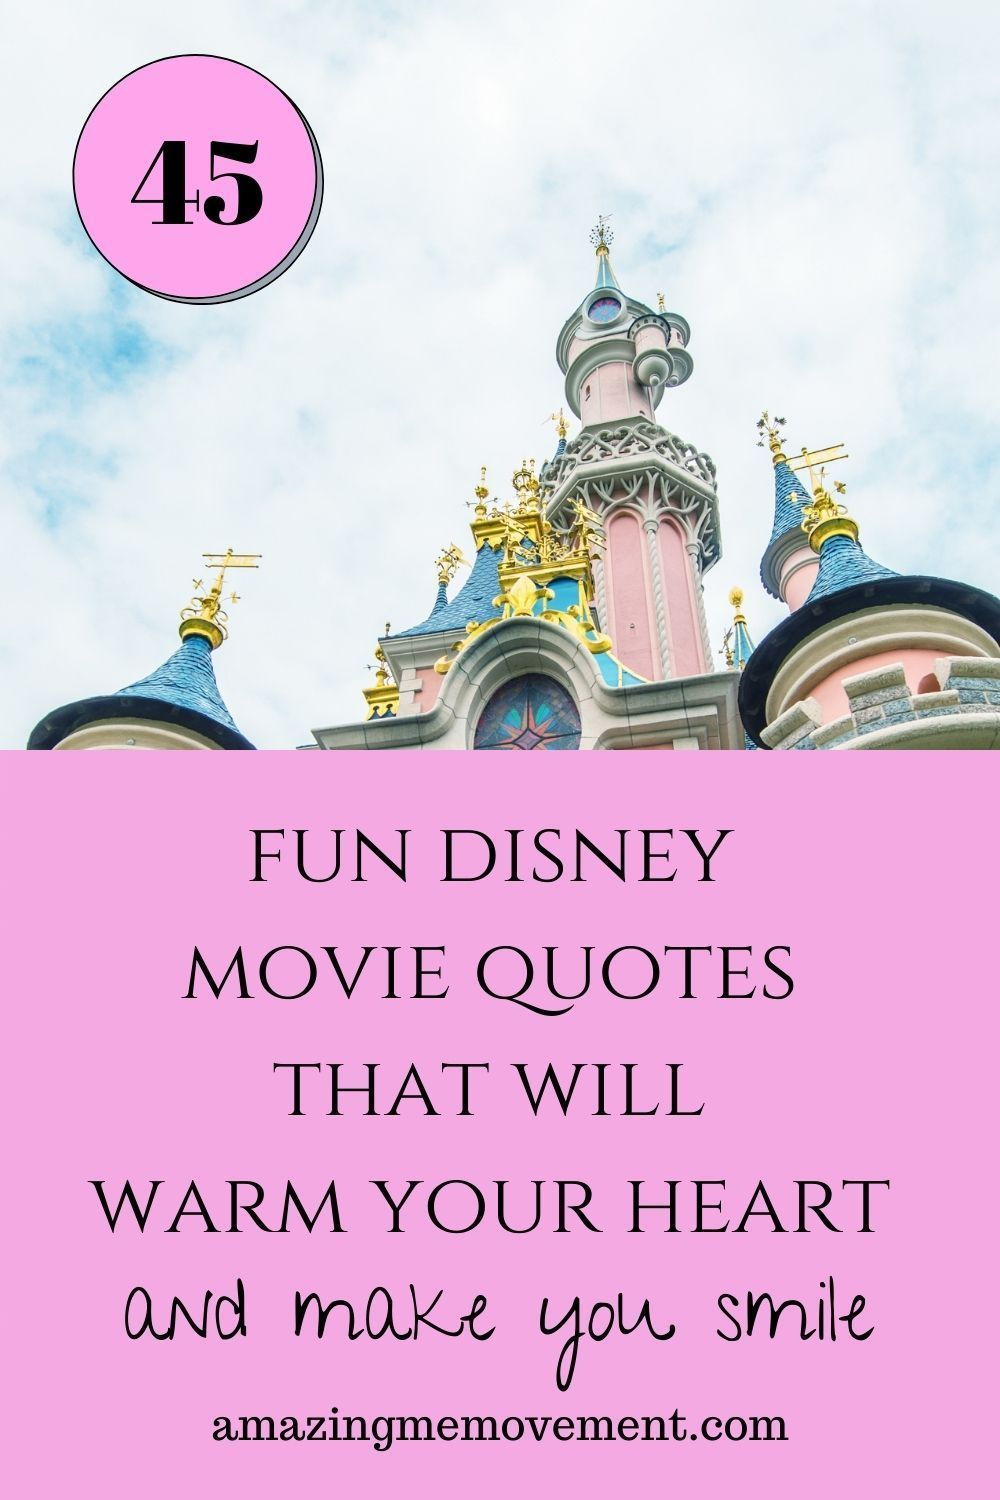 45 Disney Movie Quotes That Will Warm Your Heart And Cheer You Up Disney Love Quotes Disney Movie Quotes Disney Quotes Funny